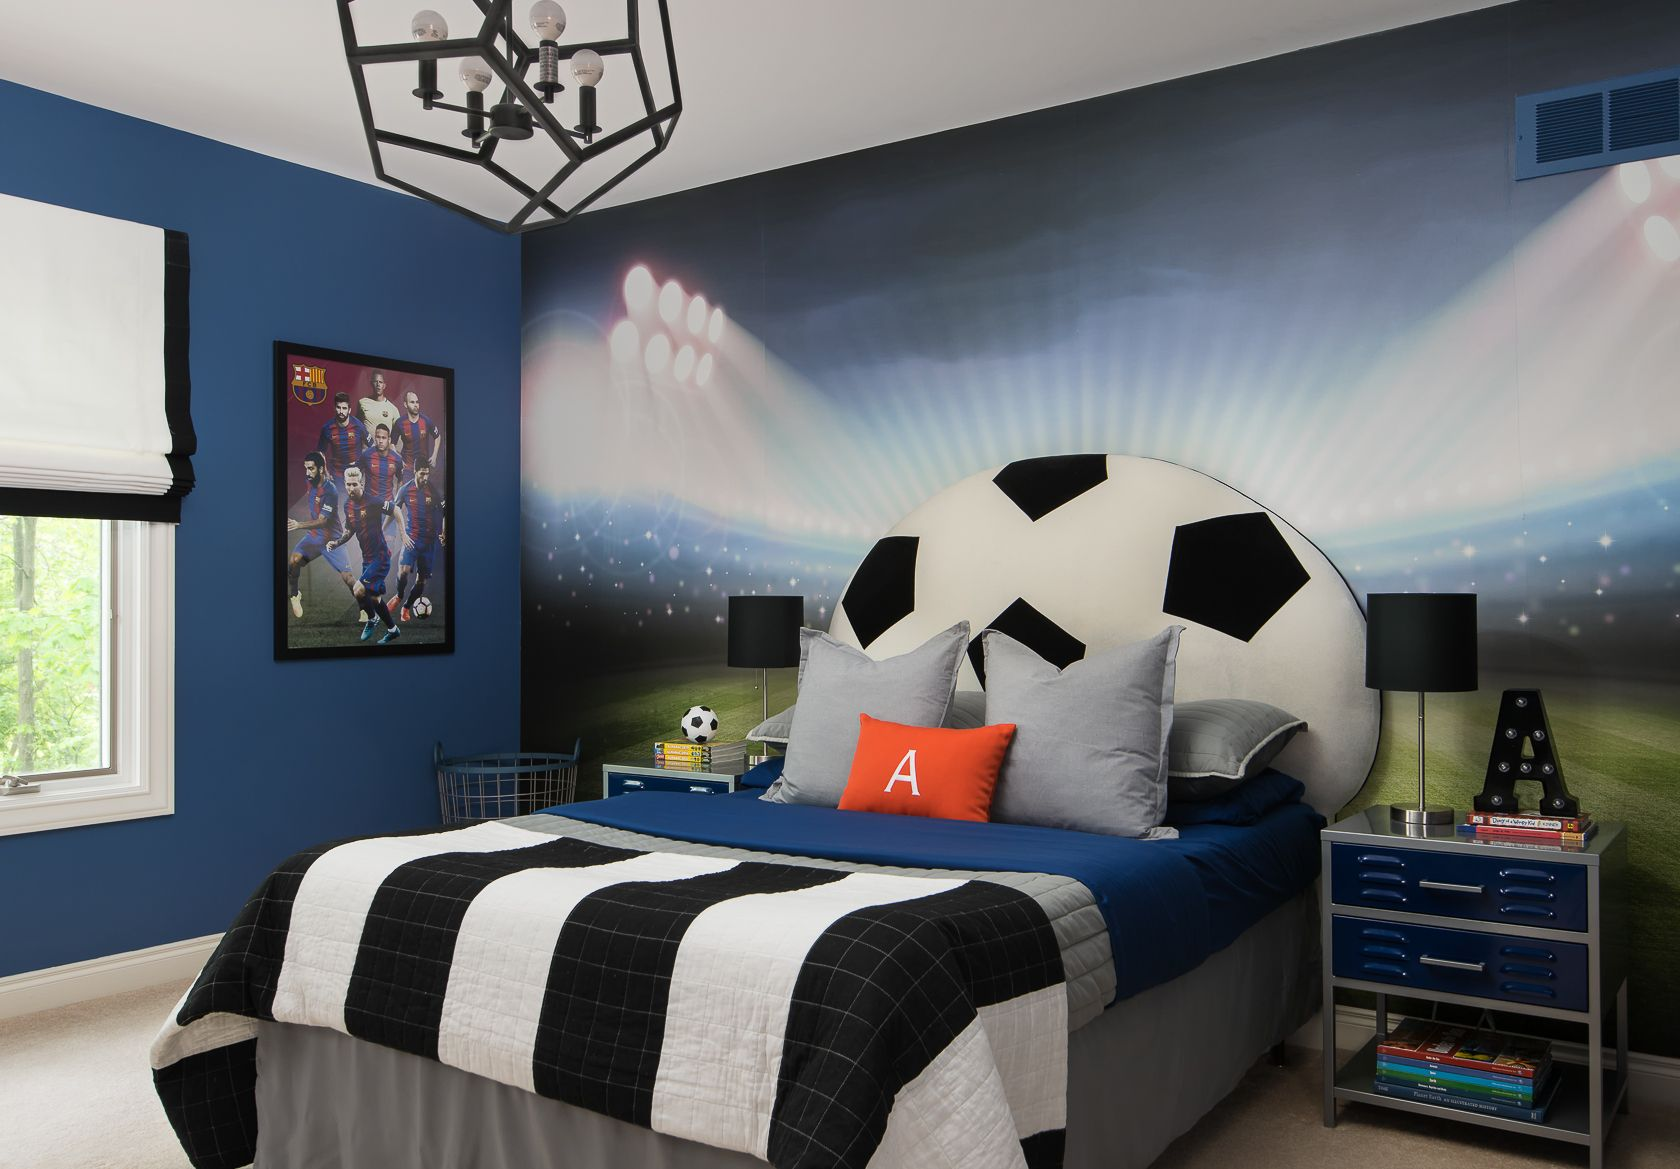 Soccer Themed Bedroom Decor For Kids Soccer Themed Bedroom Soccer Bedroom Cars Bedroom Decor